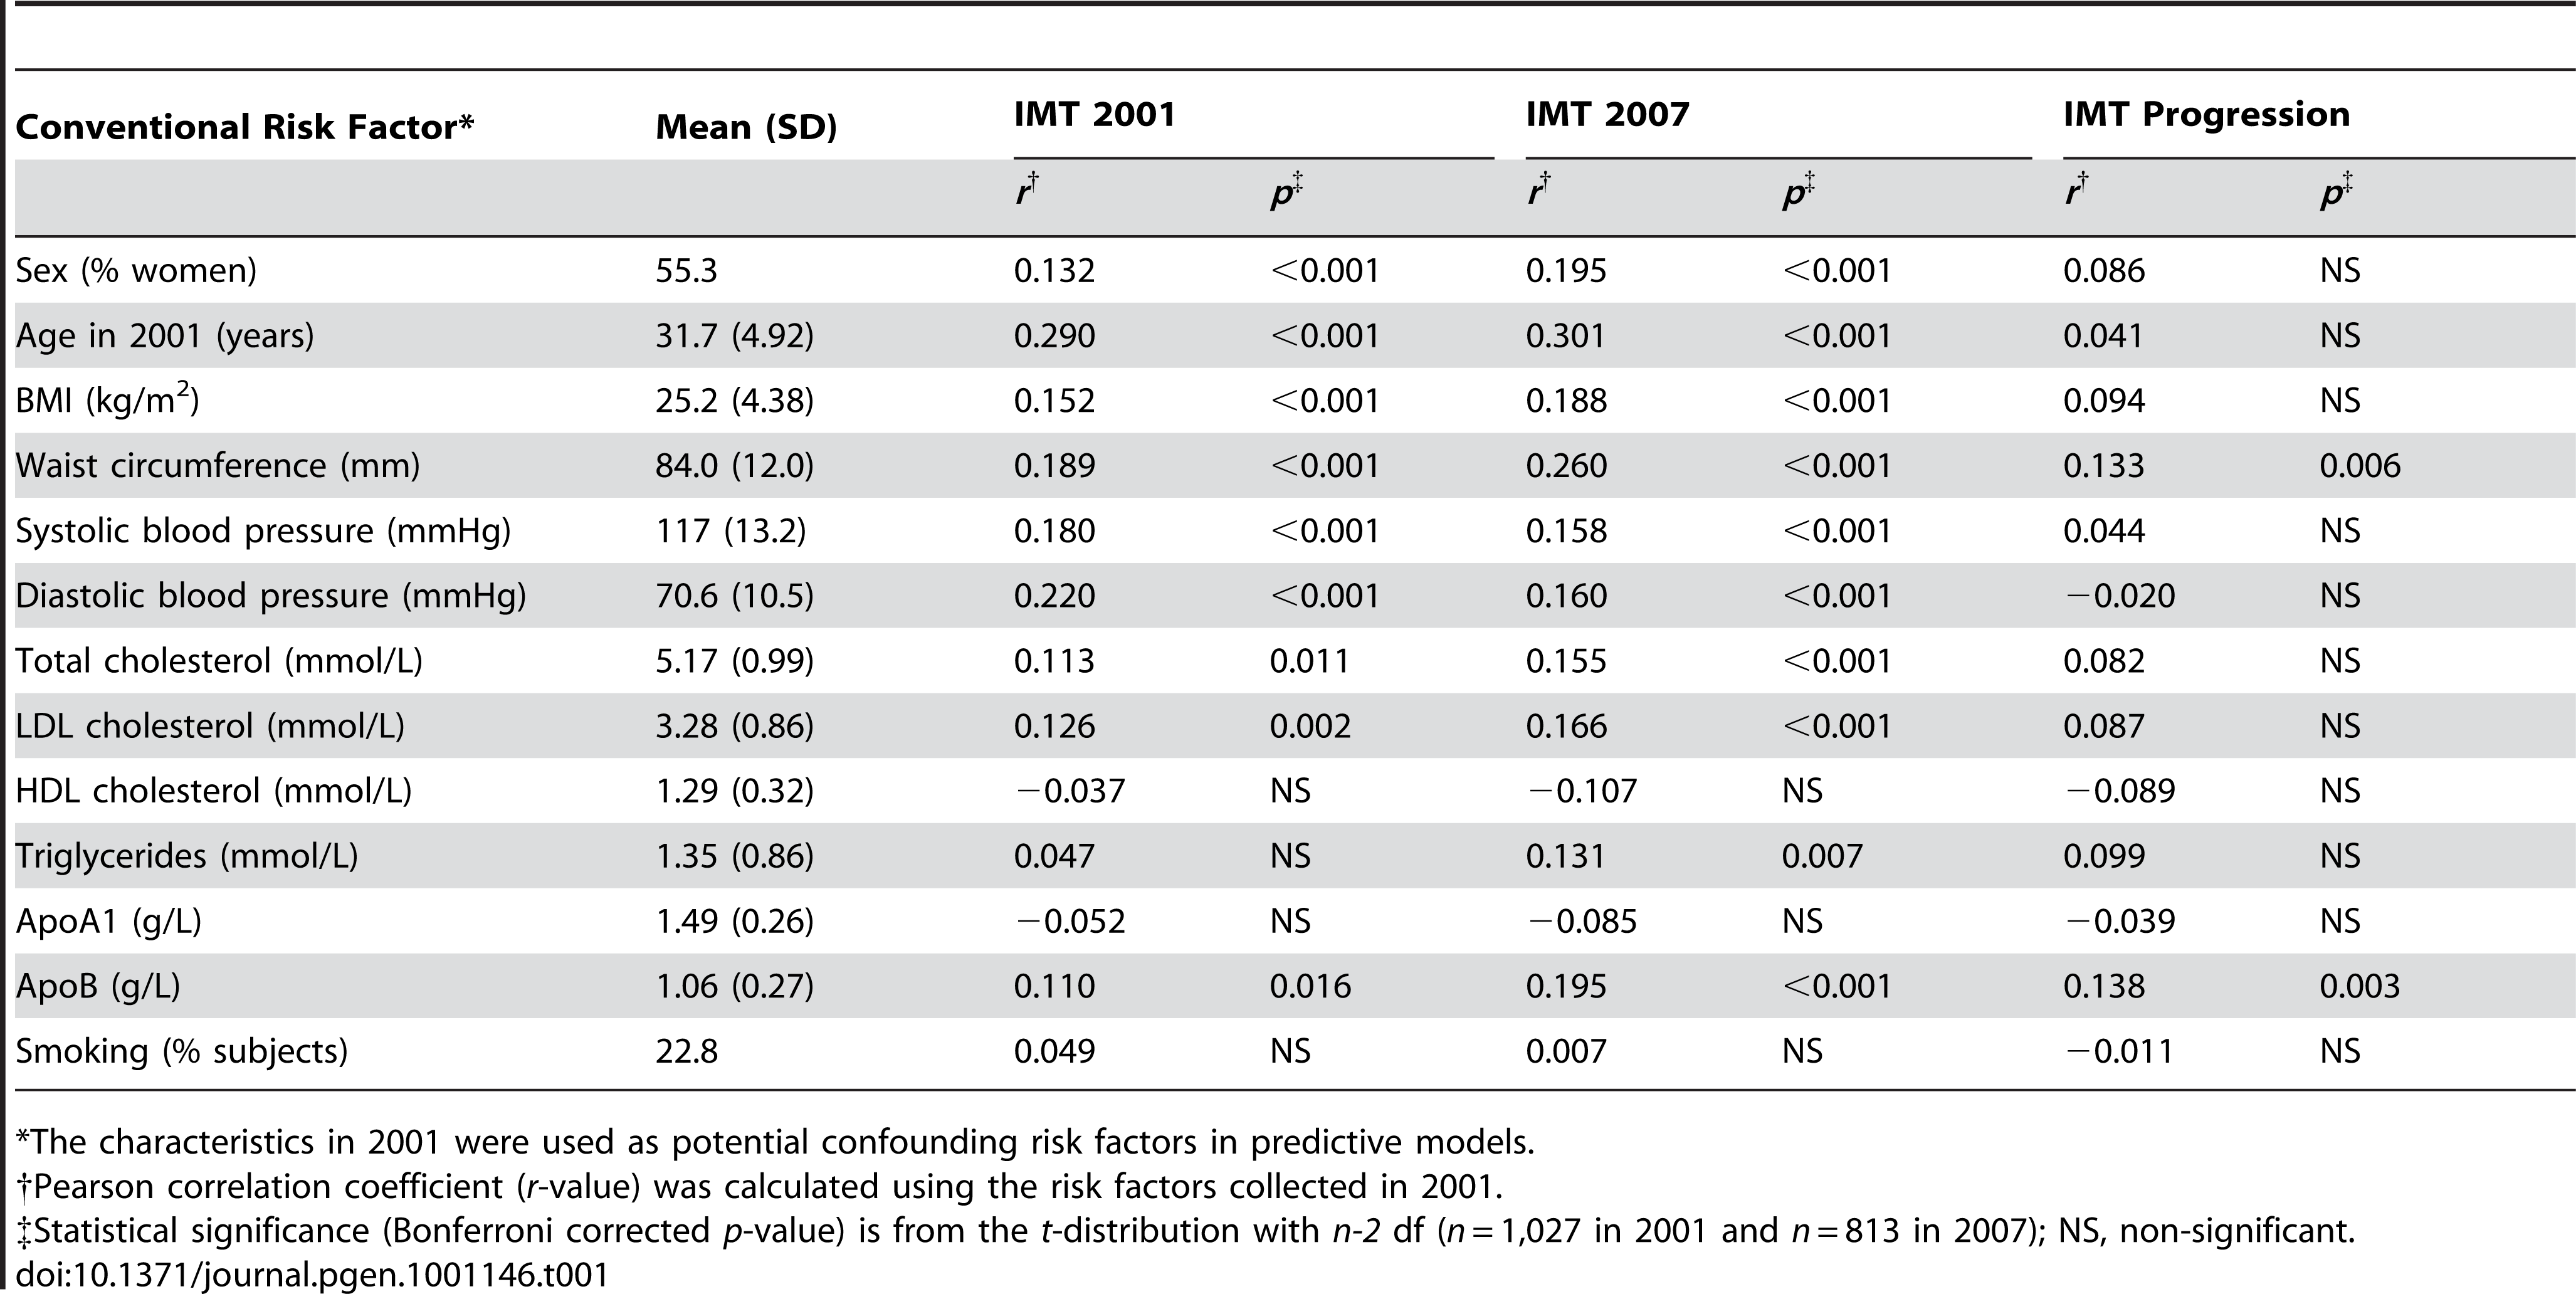 The baseline characteristics in 2001 along with their correlations with the 2007 level and progression of intima-media thickness (IMT).